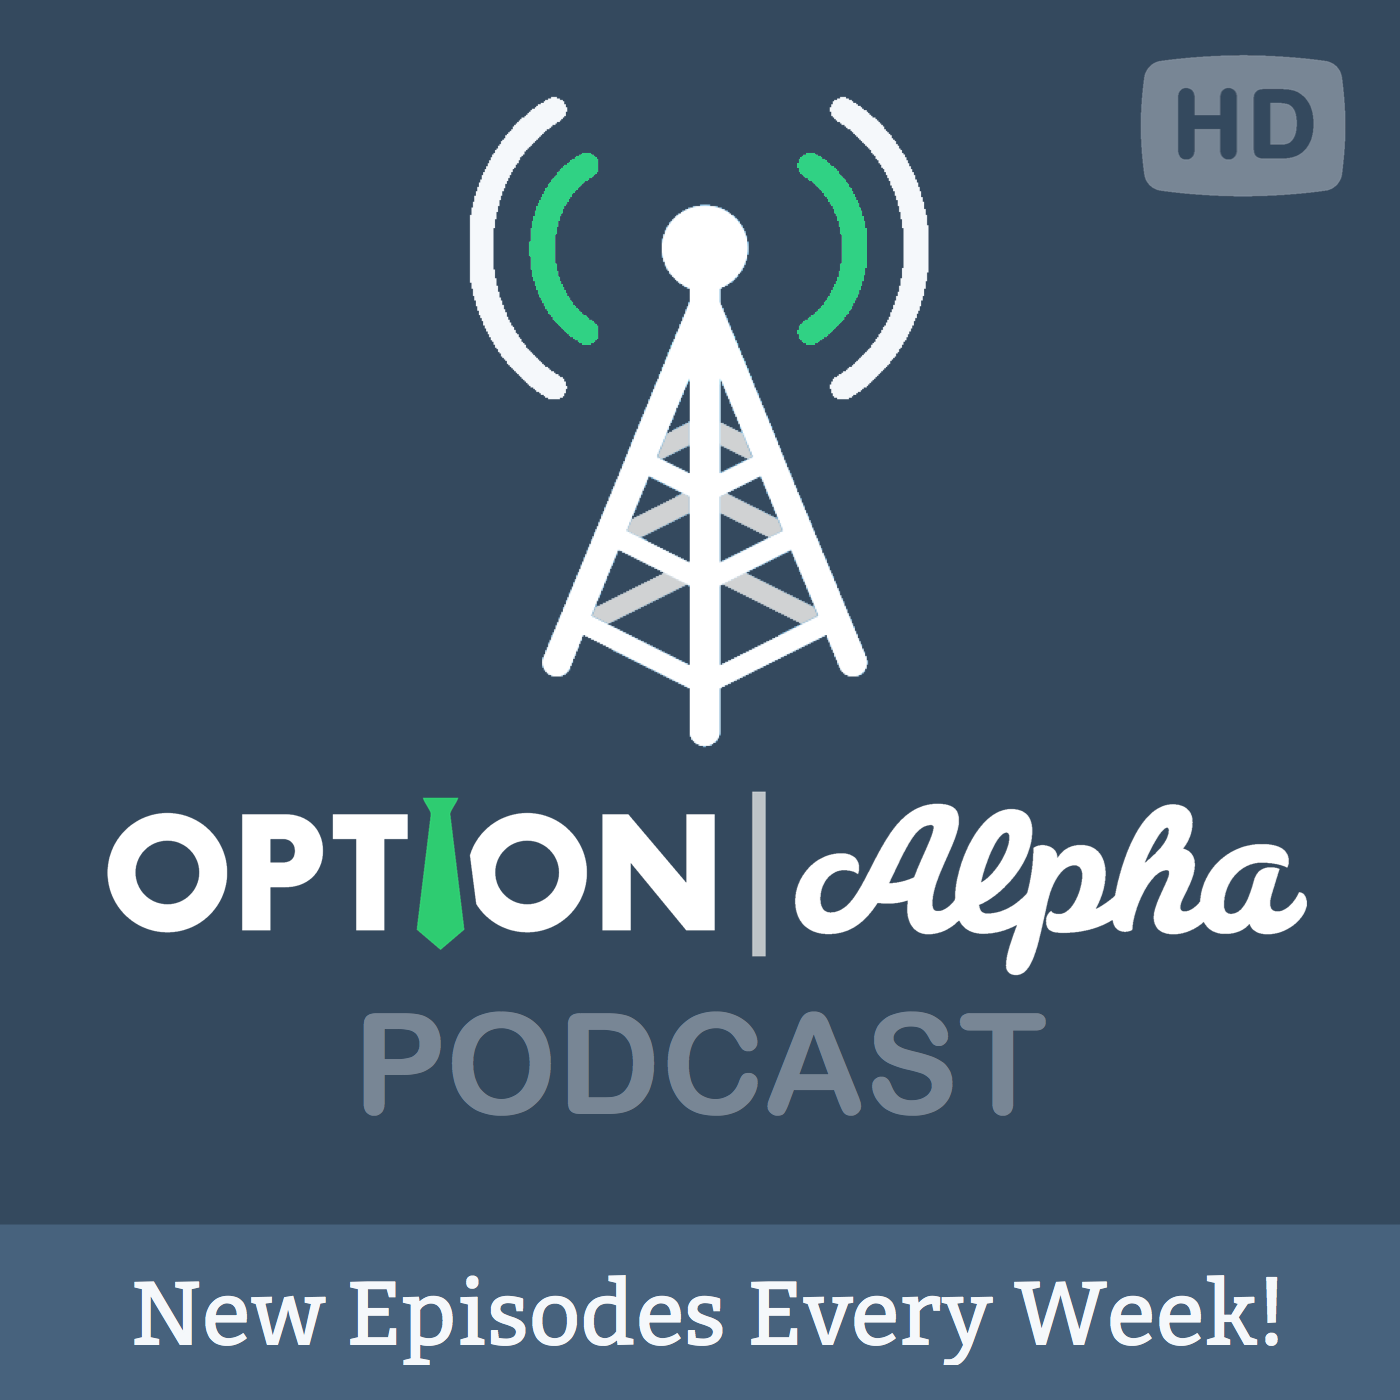 Stock options radio